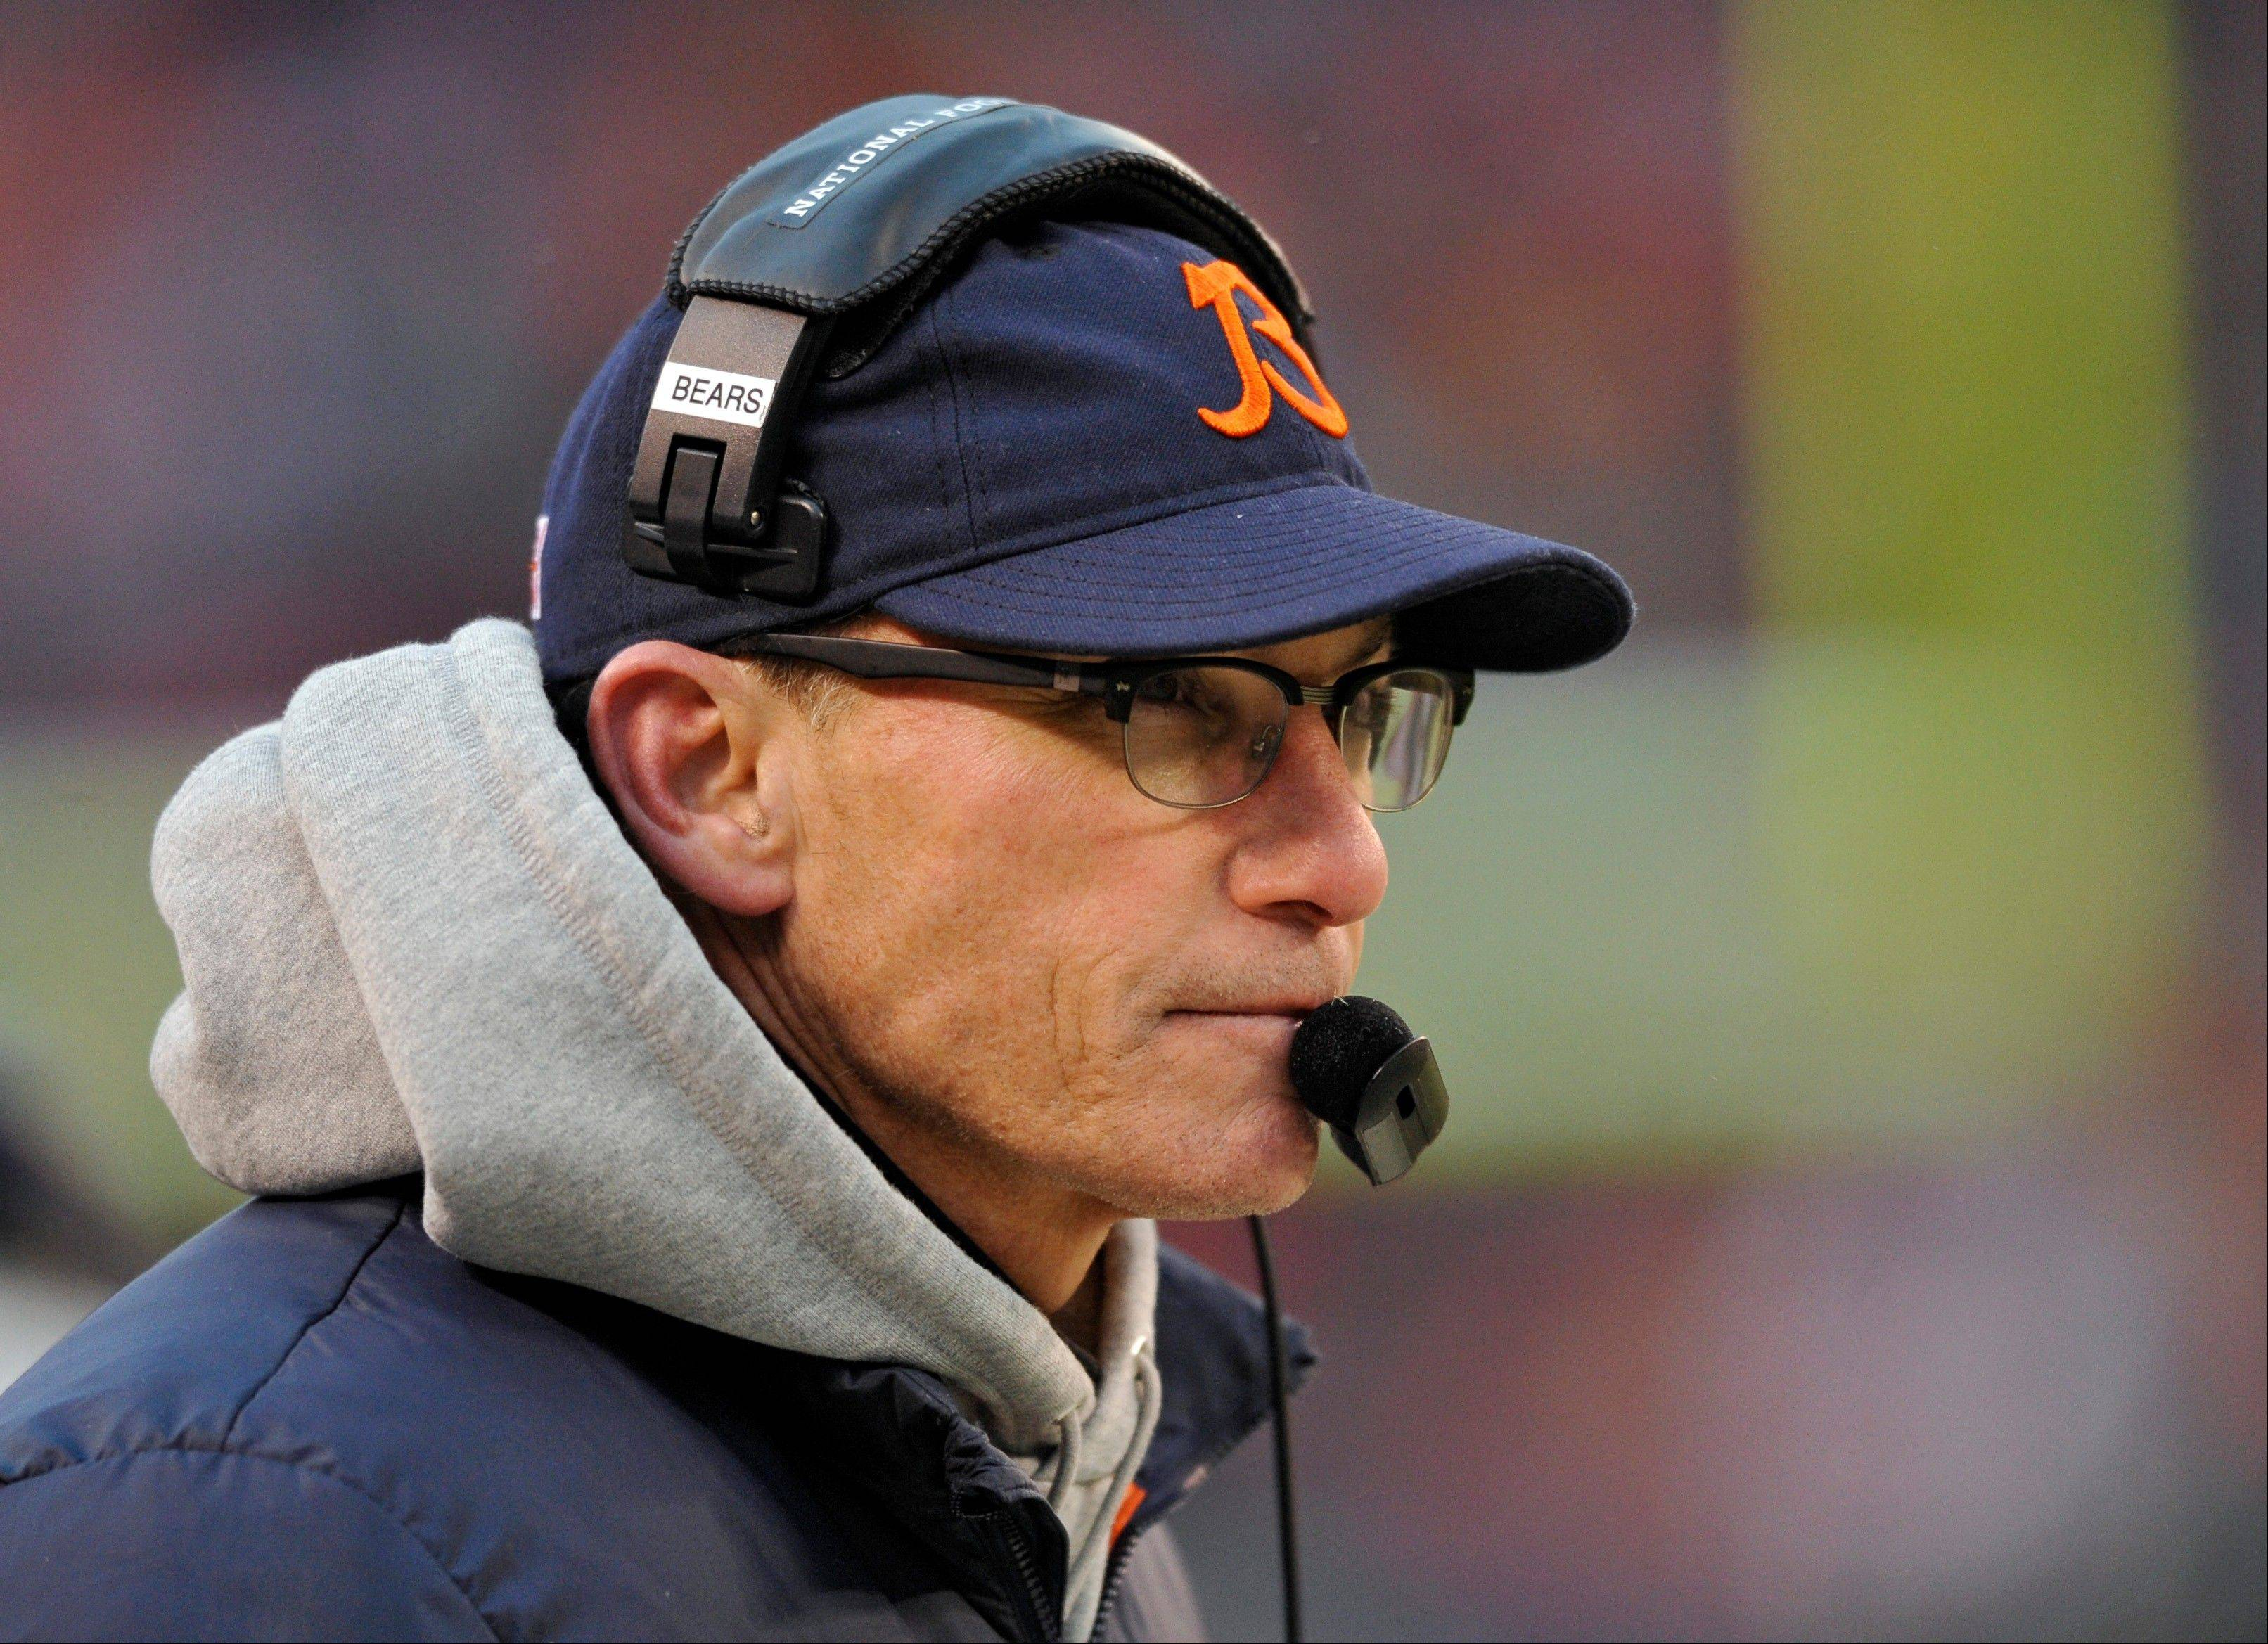 Chicago Bears head coach Marc Trestman watches from the sidelines in the fourth quarter.